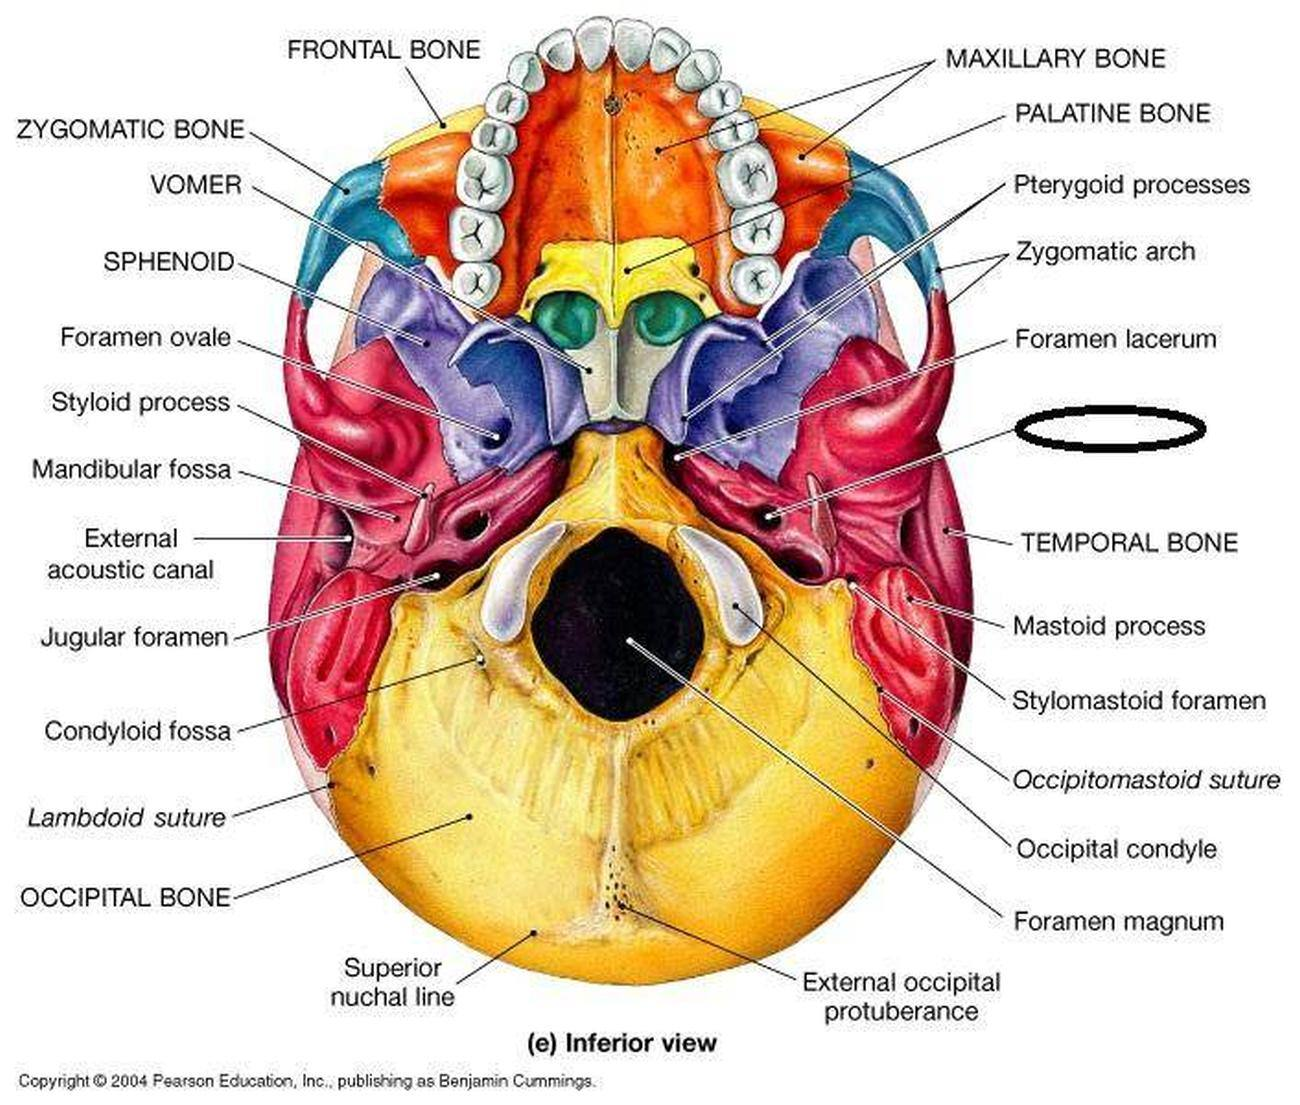 Pictures Of Carotid Canal moreover Red Banner Ribbon   7276 besides Chanel No 5 label furthermore Left Ulna in addition Human Anatomy Labeling Worksheets. on skull label